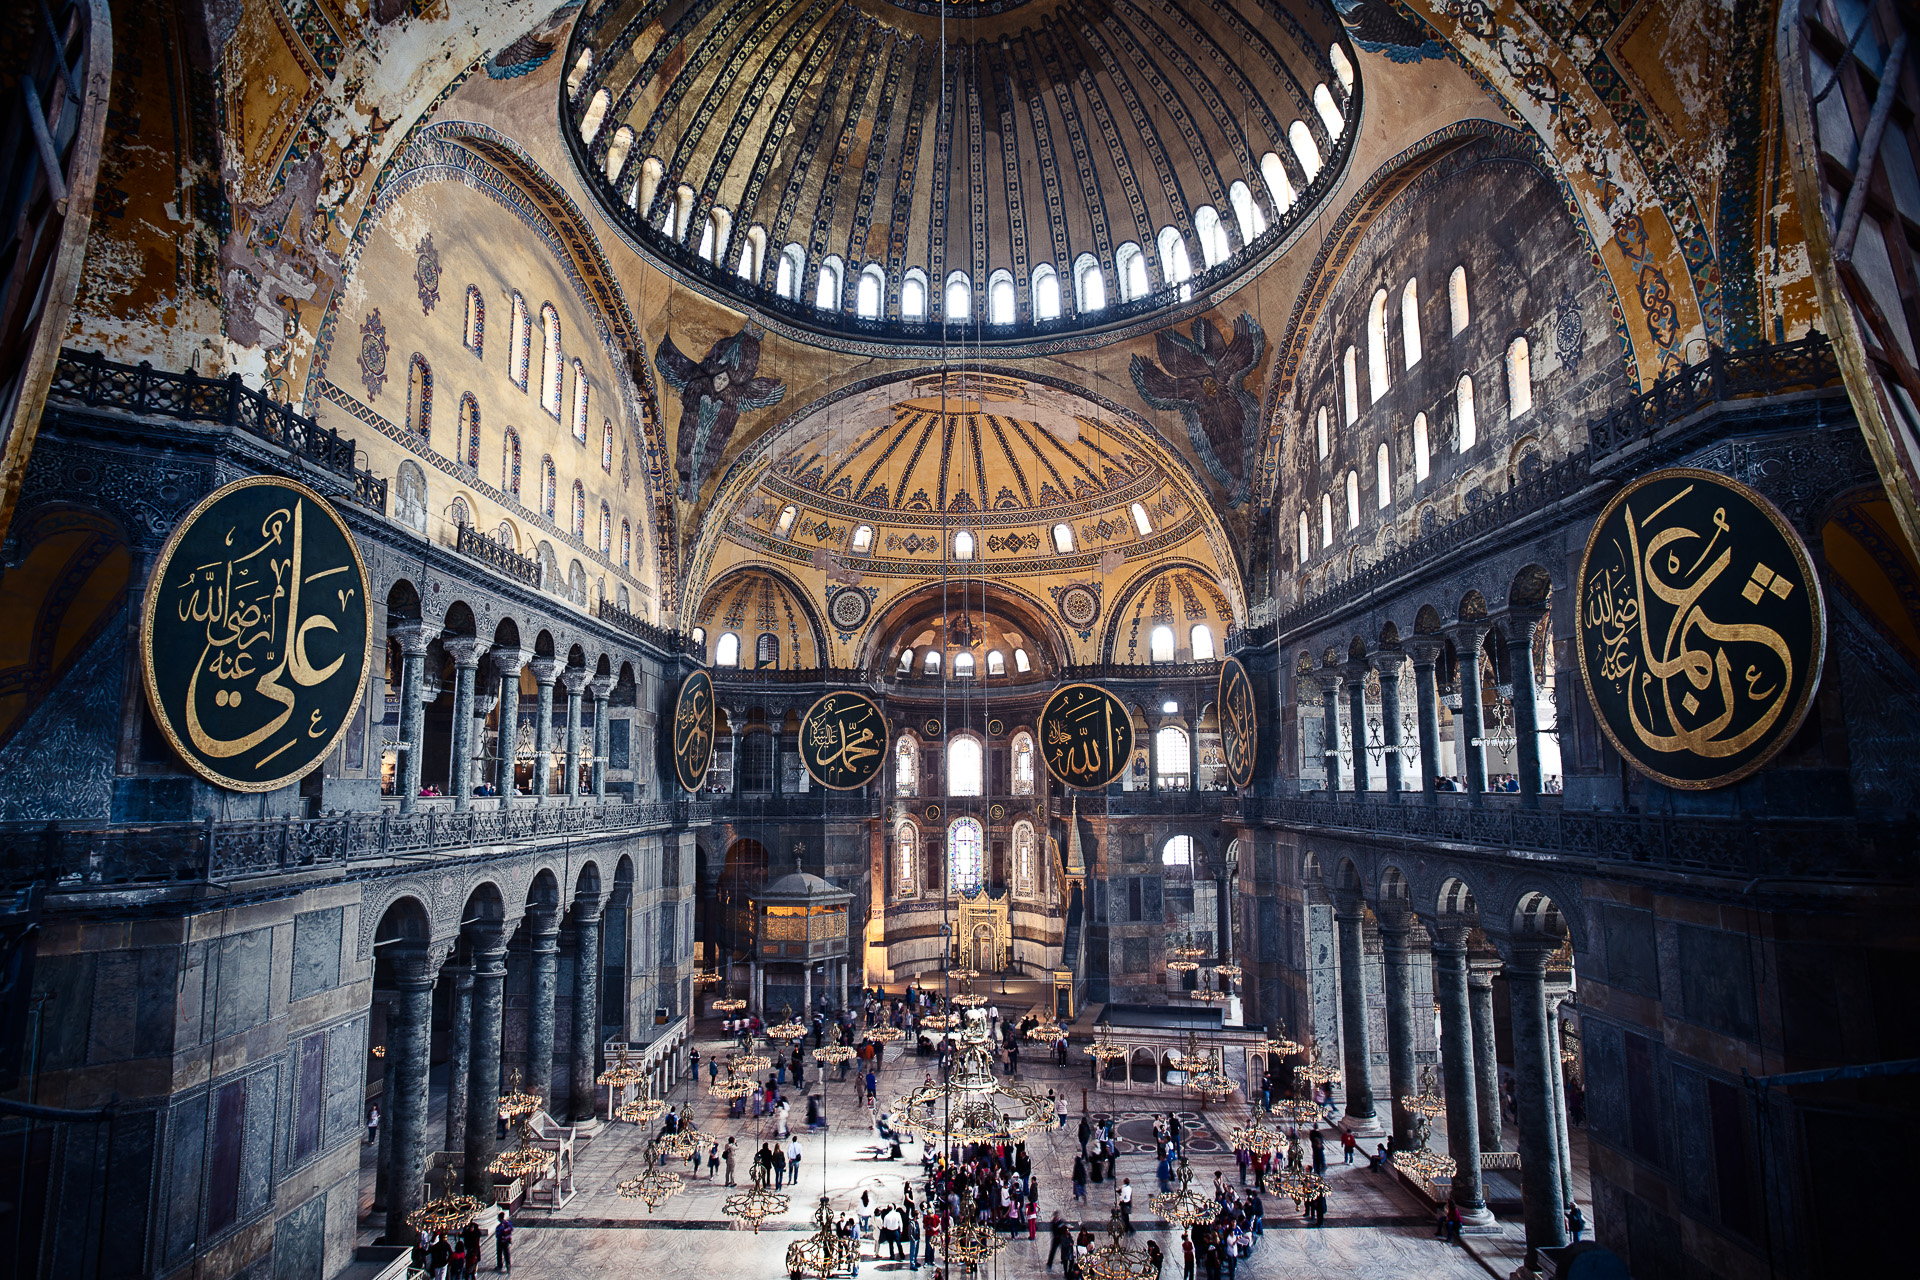 The interior of Hagia Sophia as featured in TIME Magazine